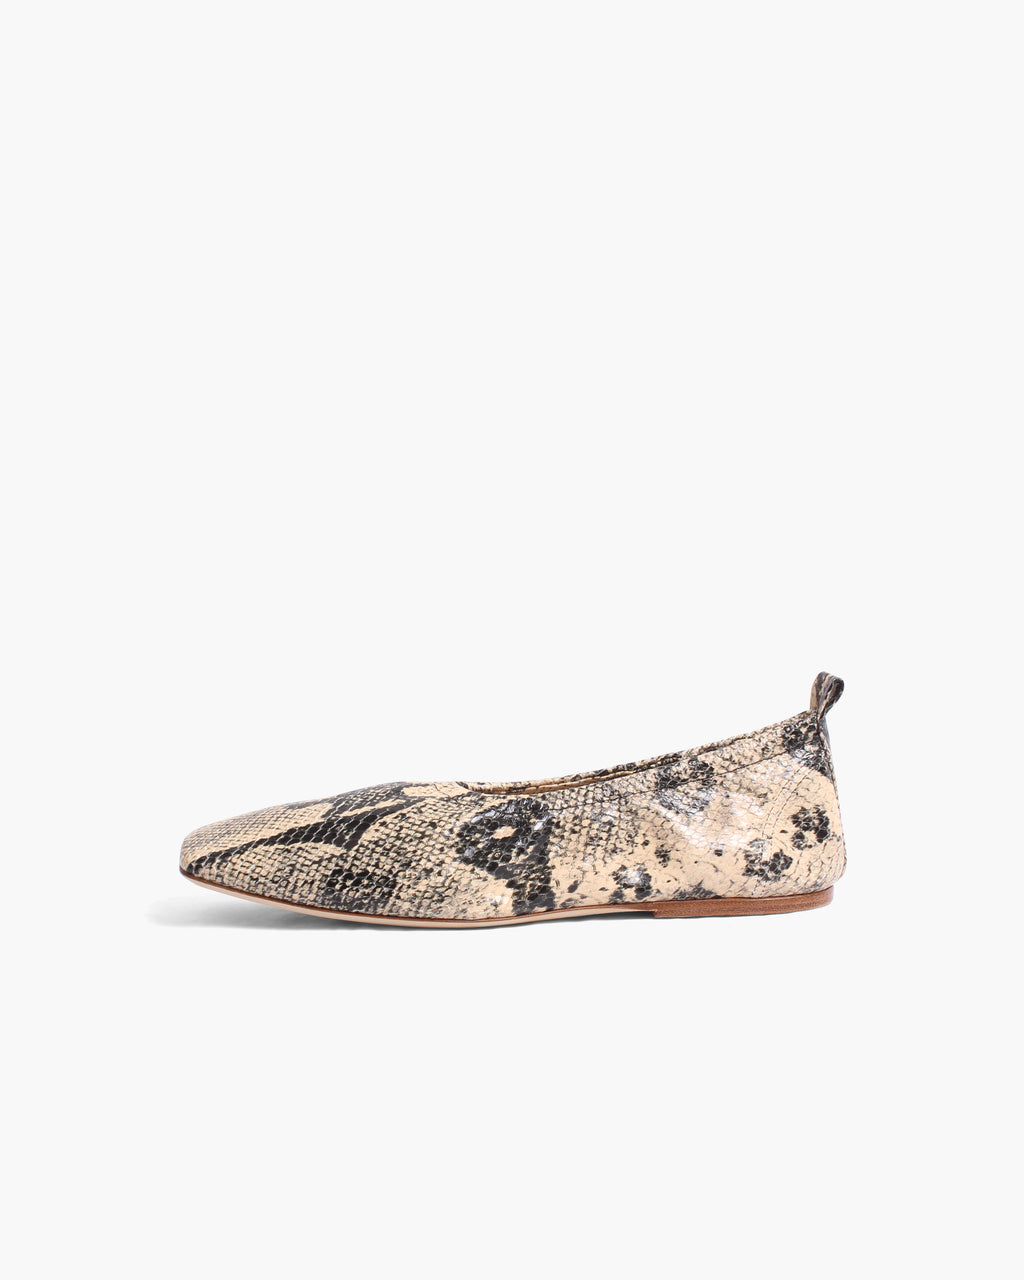 Tommi Flats Leather Print Boa Beige - WEBSHOP EXCLUSIVE - ADDITIONAL 10% OFF SALE PRICE